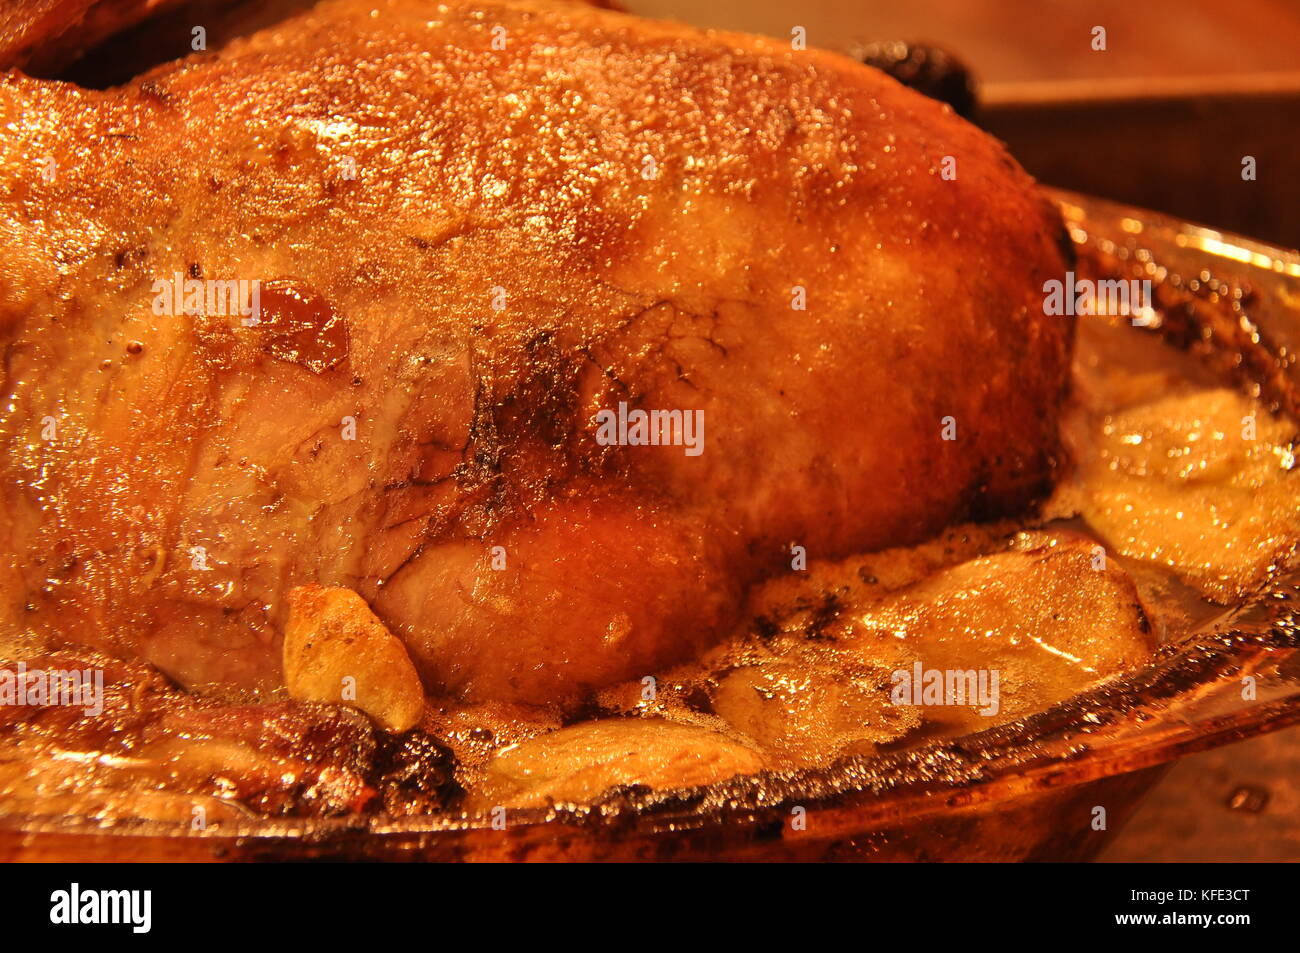 Duck with apples and cranberries. Poultry baked in casserole. - Stock Image